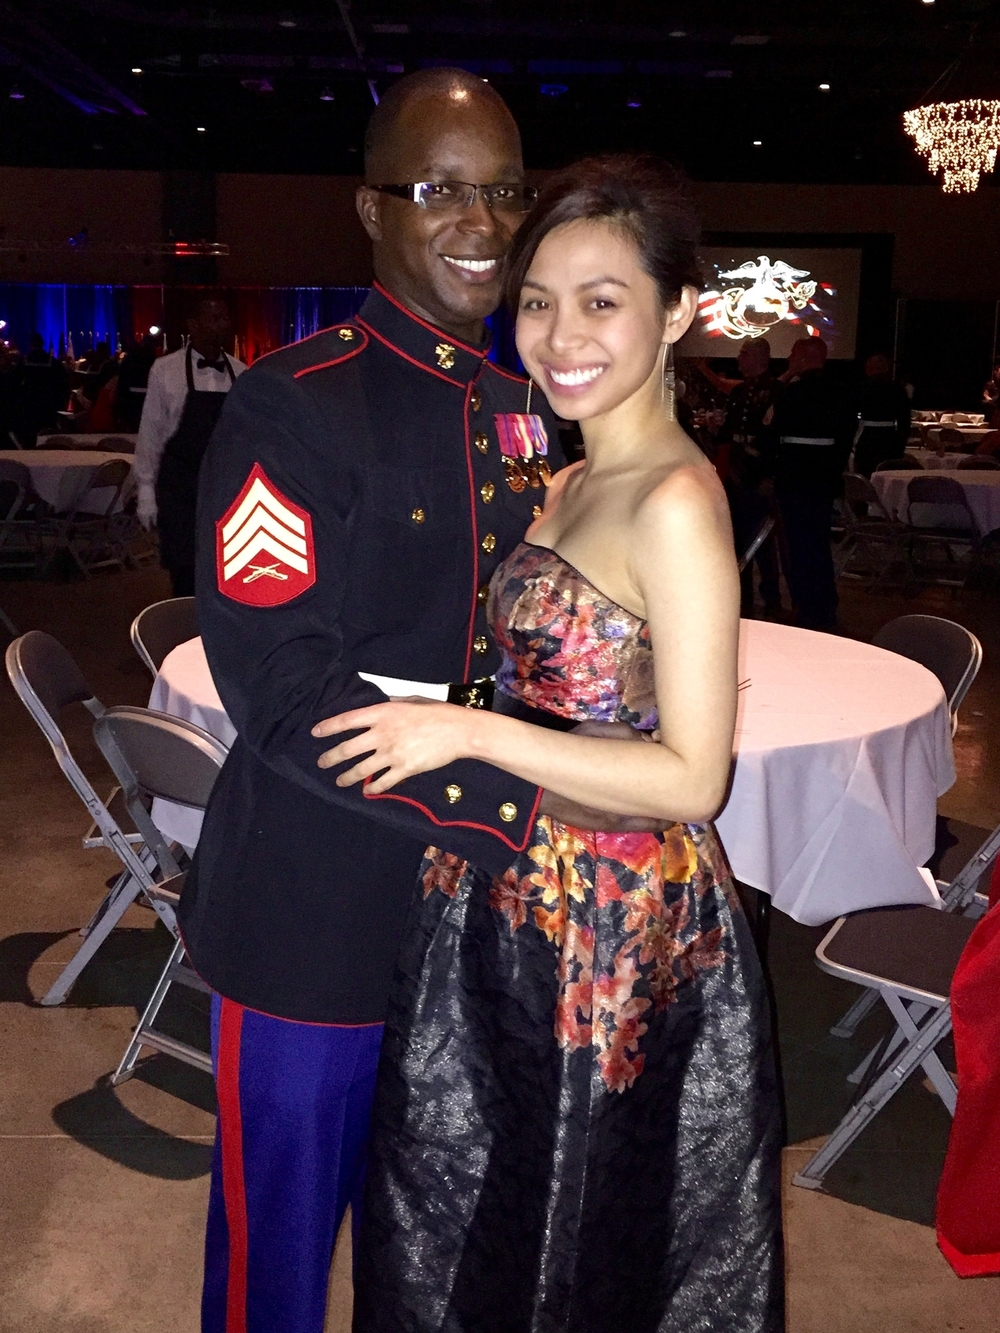 The Marine Corps Ball